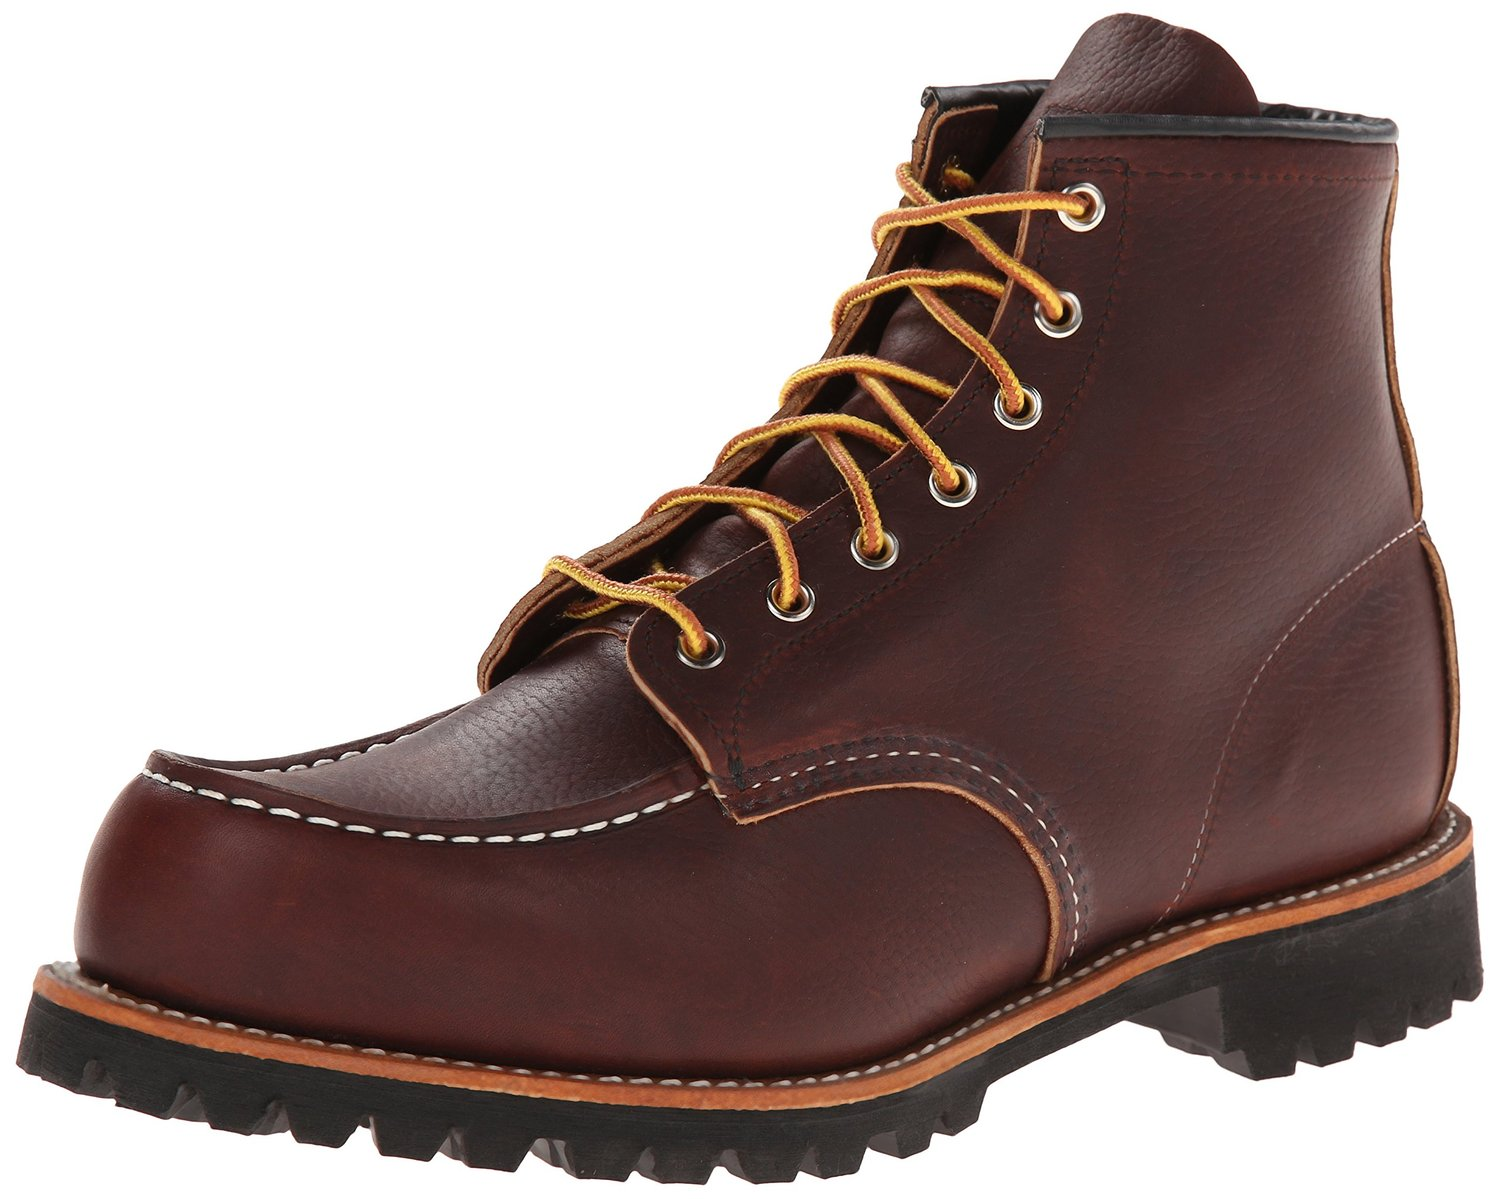 Cheap Red Wing Boots hOPuswJu